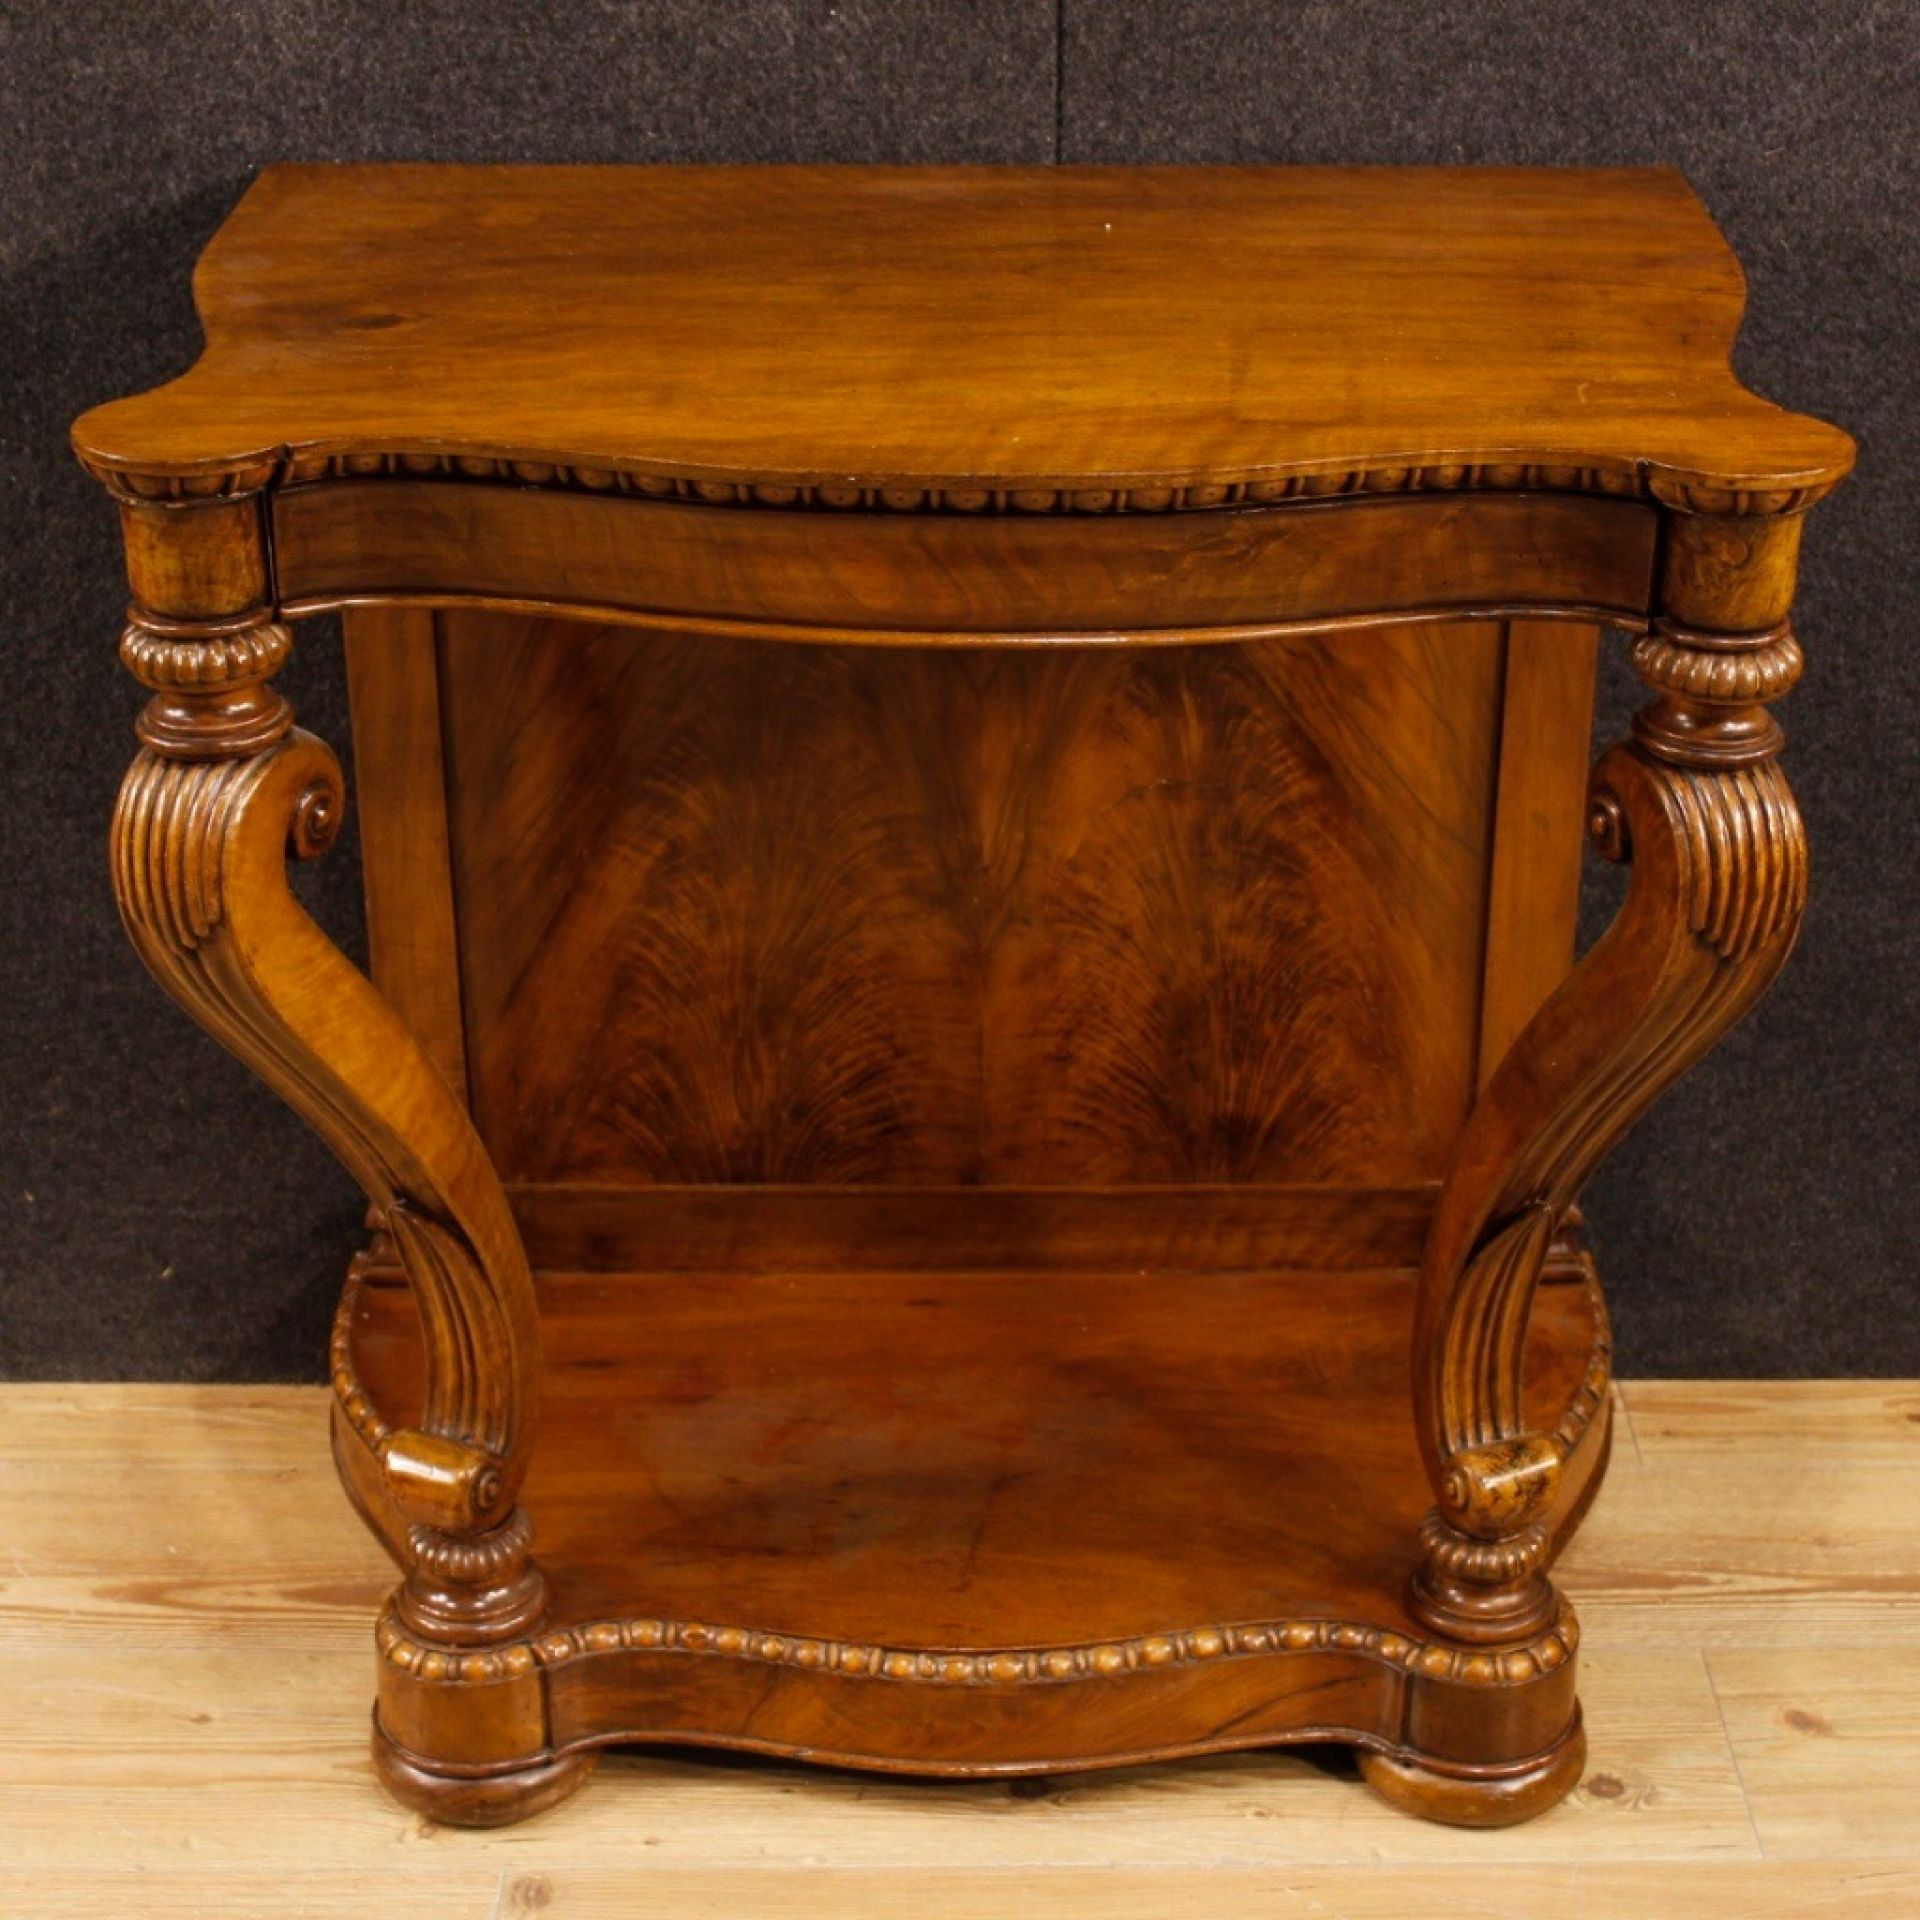 20th Century In Carved Walnut Wood French Writing Desk, 1920